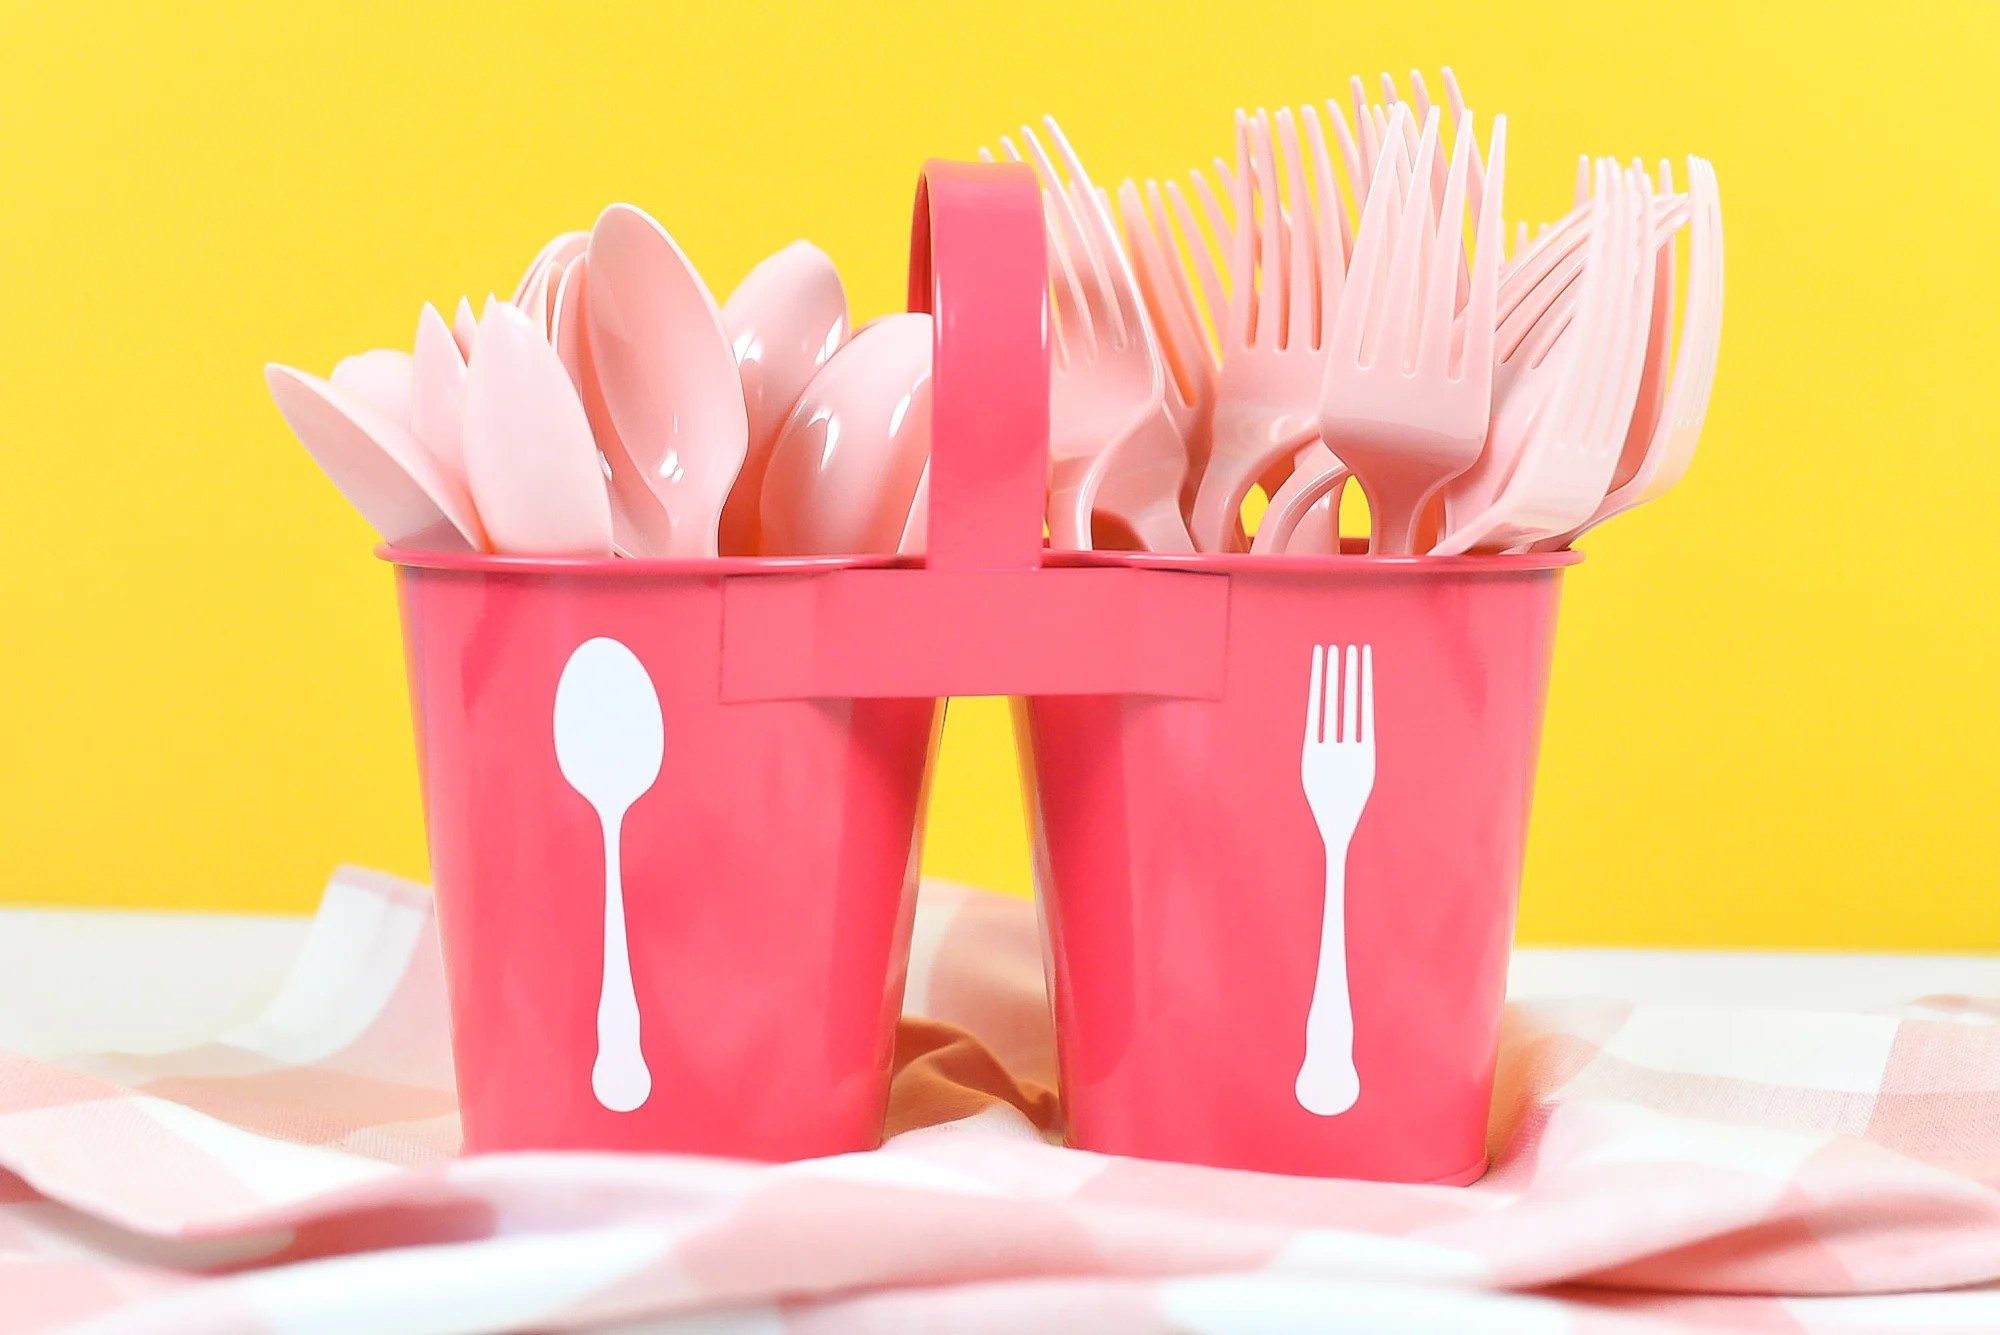 Pink utensil caddy with white spoon and for decals, filled with pink plastic forks and spoons on a yellow background.